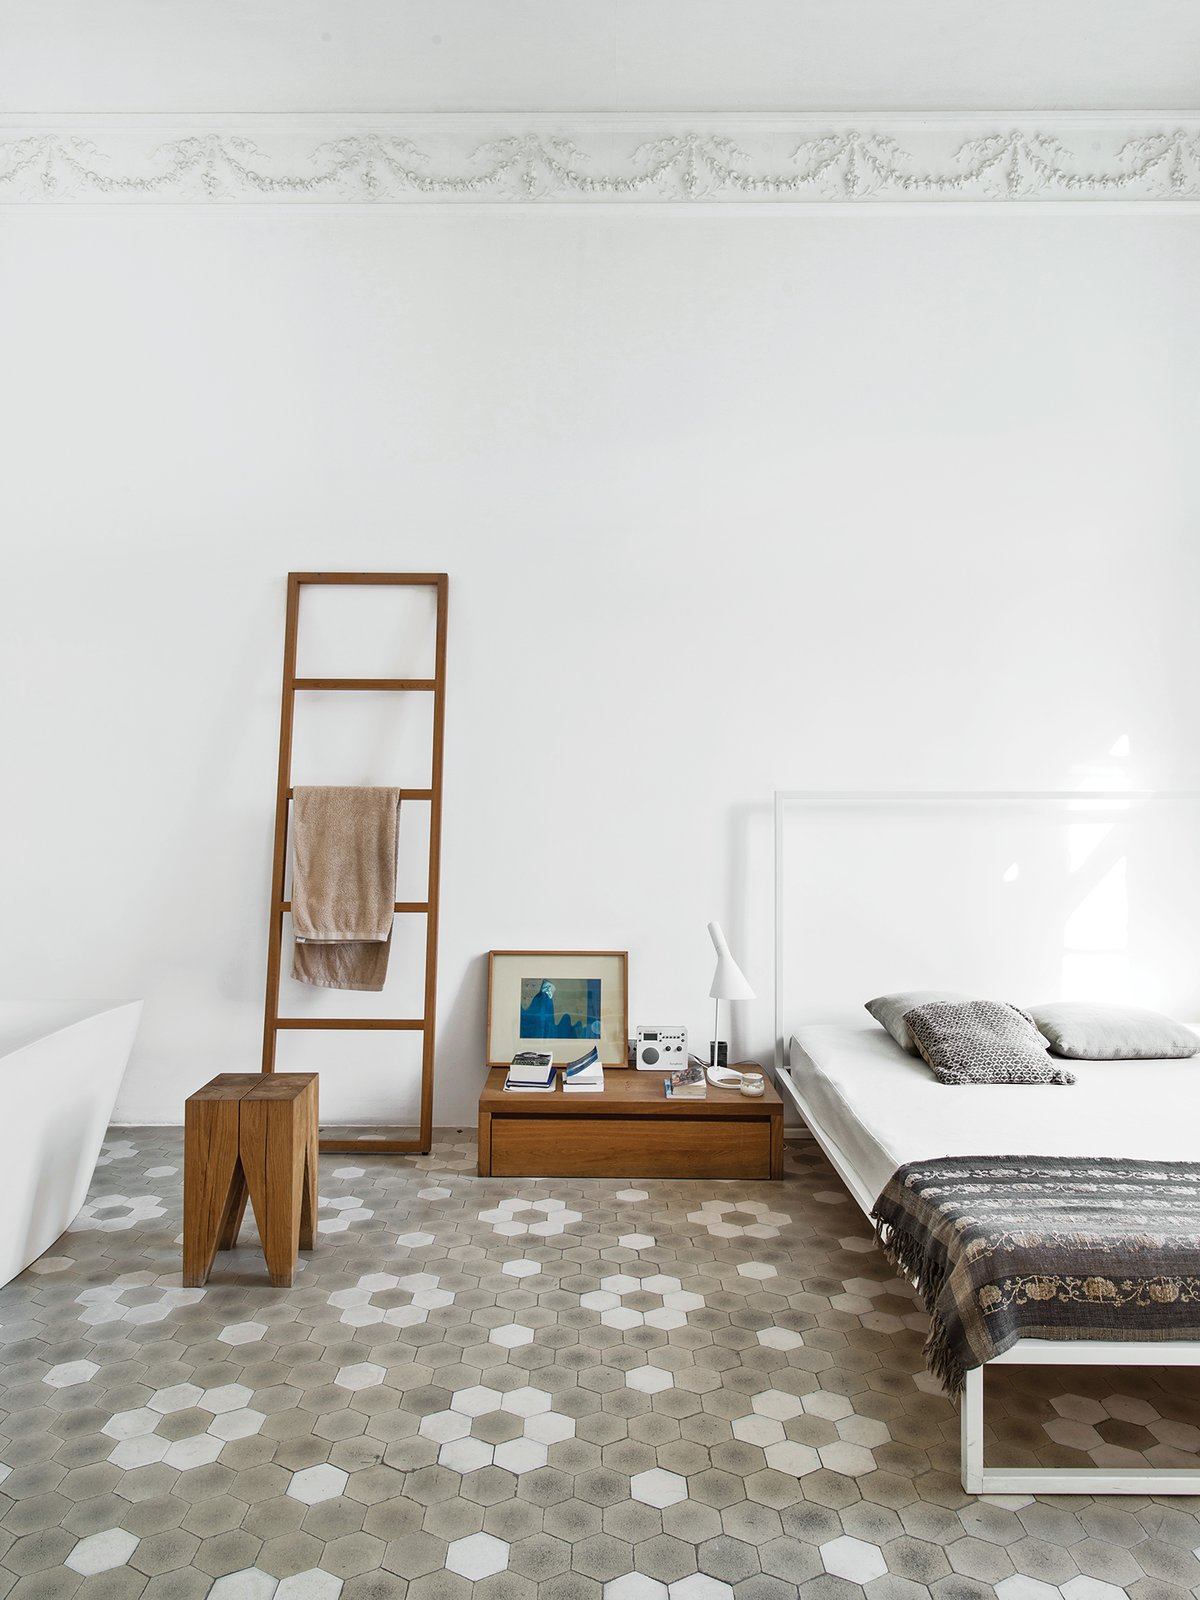 The master bedroom includes a Mini bed by Emaf Progetti for Zanotta, a tub by Sanico, and a towel rack and side table by Philipp Mainzer. Tagged: Bedroom, Bed, Night Stands, and Lamps.  Bedroom by Lauren Gundlach from Love at First Sight